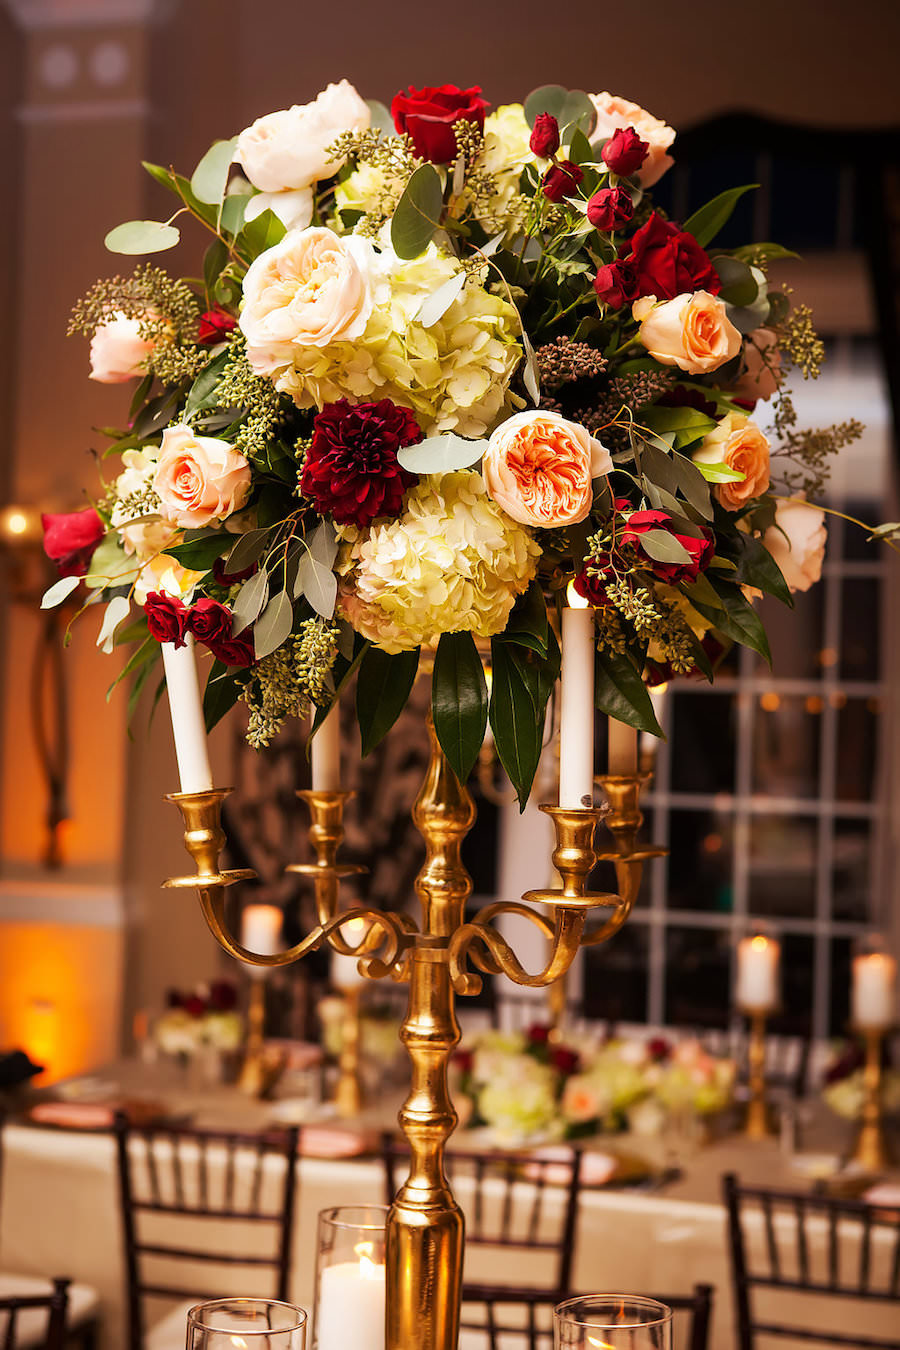 Burgundy and Gold Don CeSar Hotel, St Pete Florida Wedding Reception with Brown Chiavari Chairs with Gold Candelabras and Tall Floral Centerpieces with Candlesticks   Limelight Photography